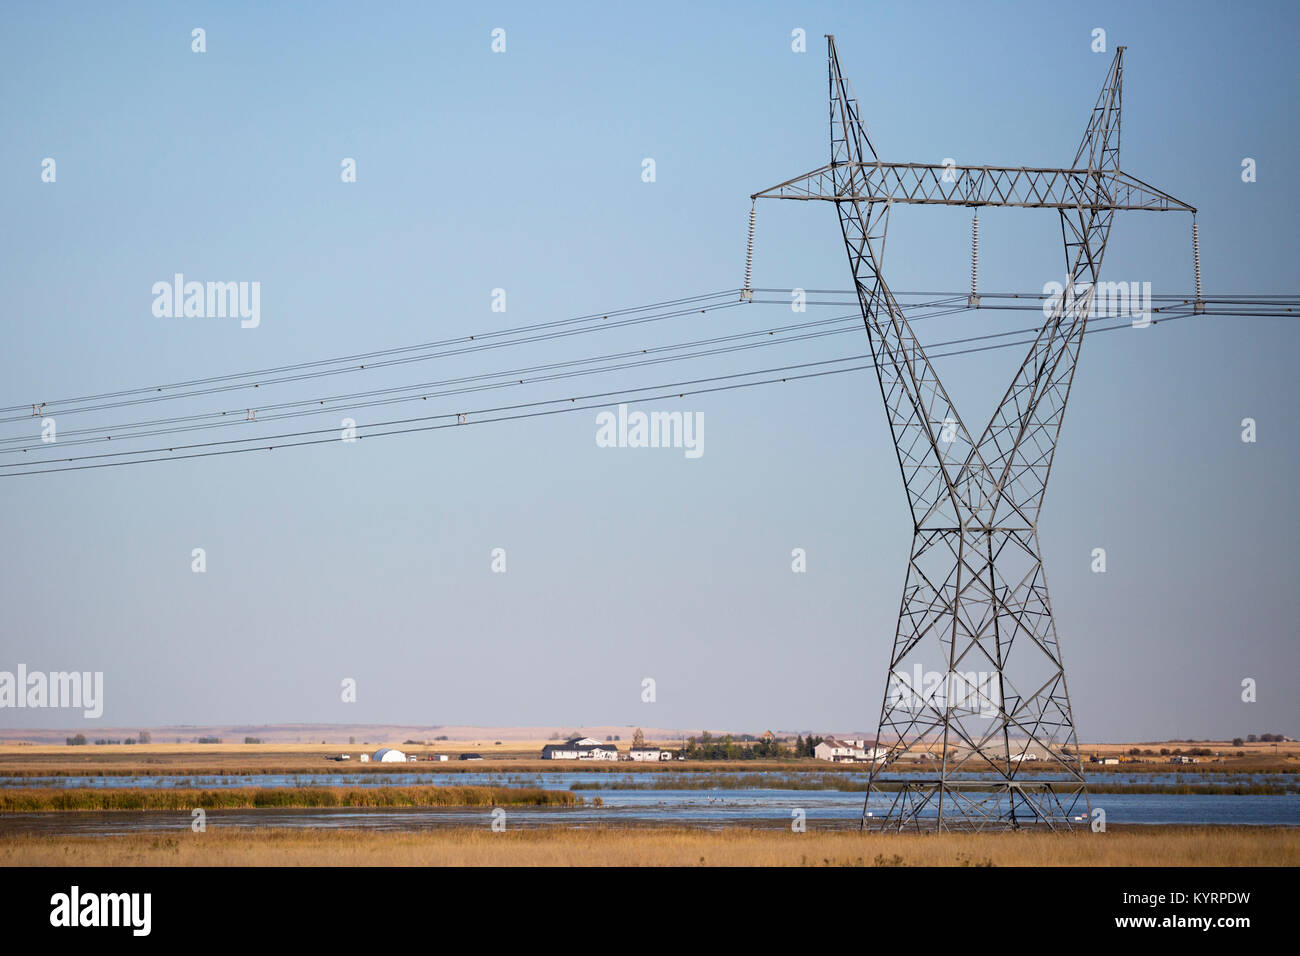 Transmission tower across prairie lake - Stock Image